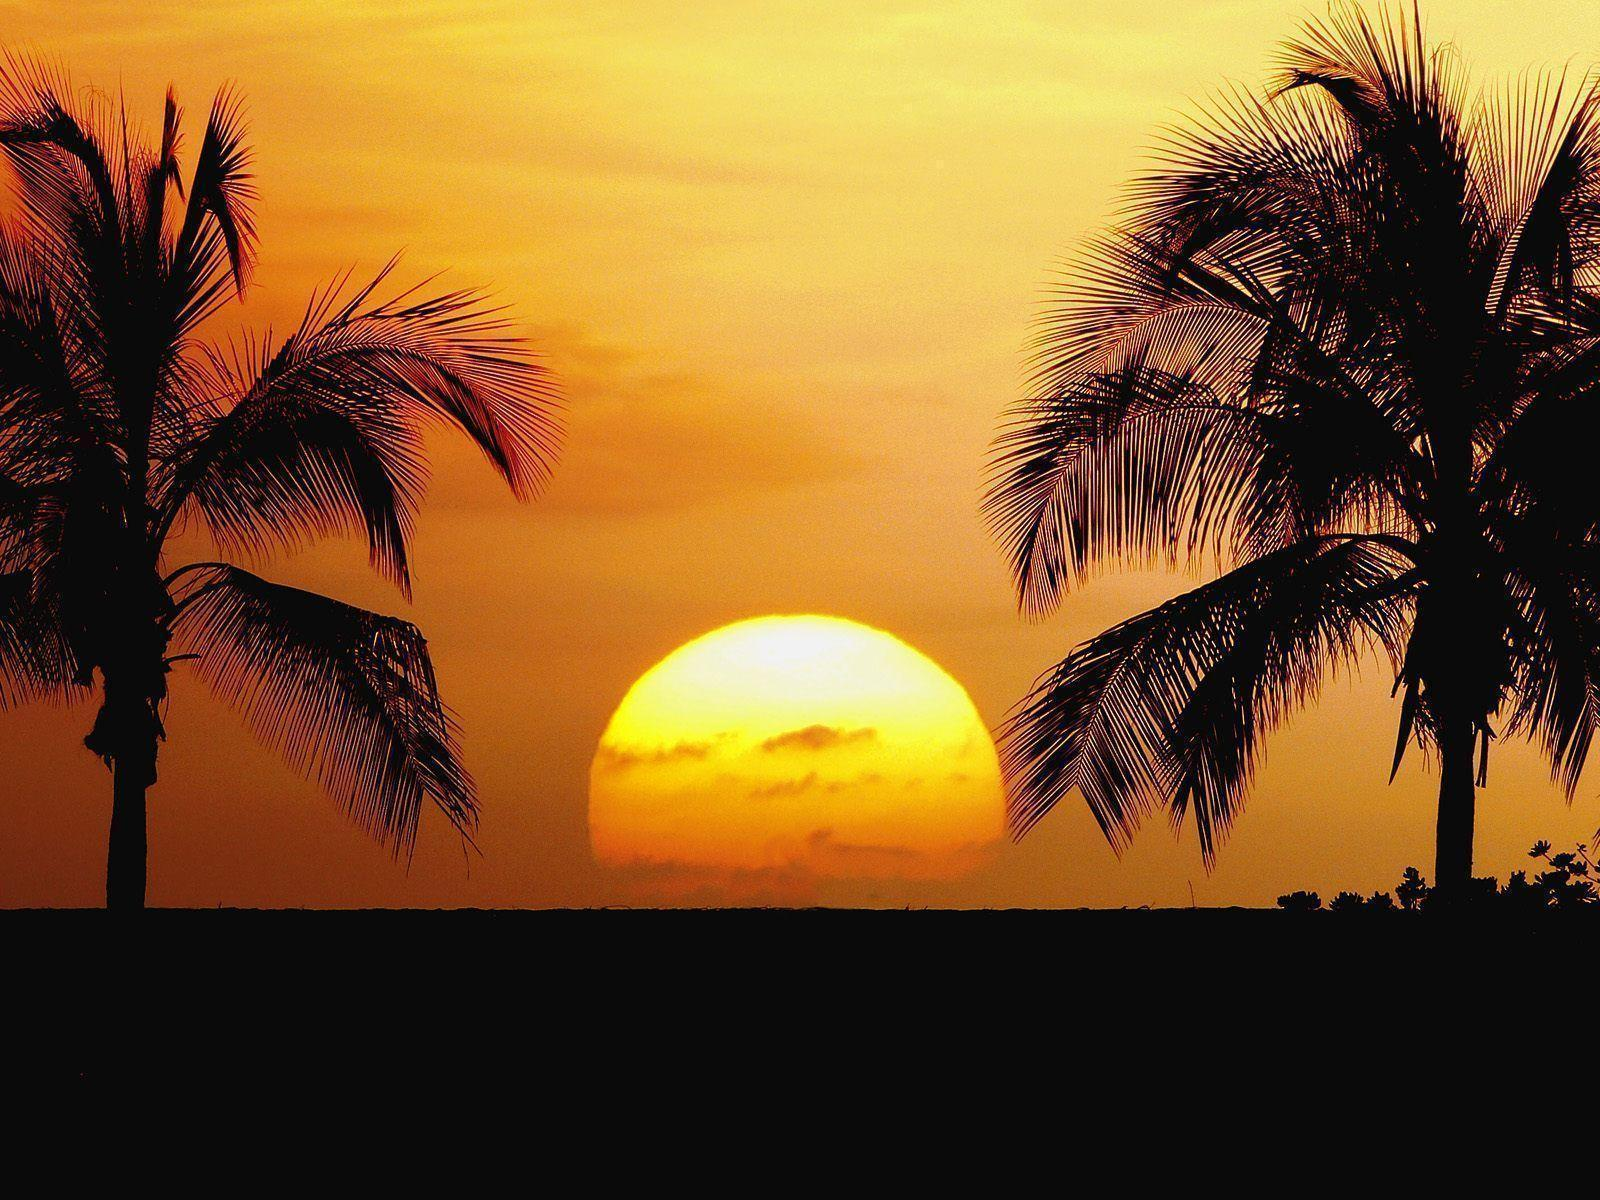 Sunset Beach Palm Tress HD Wallpaper Desktop Backgrounds Free